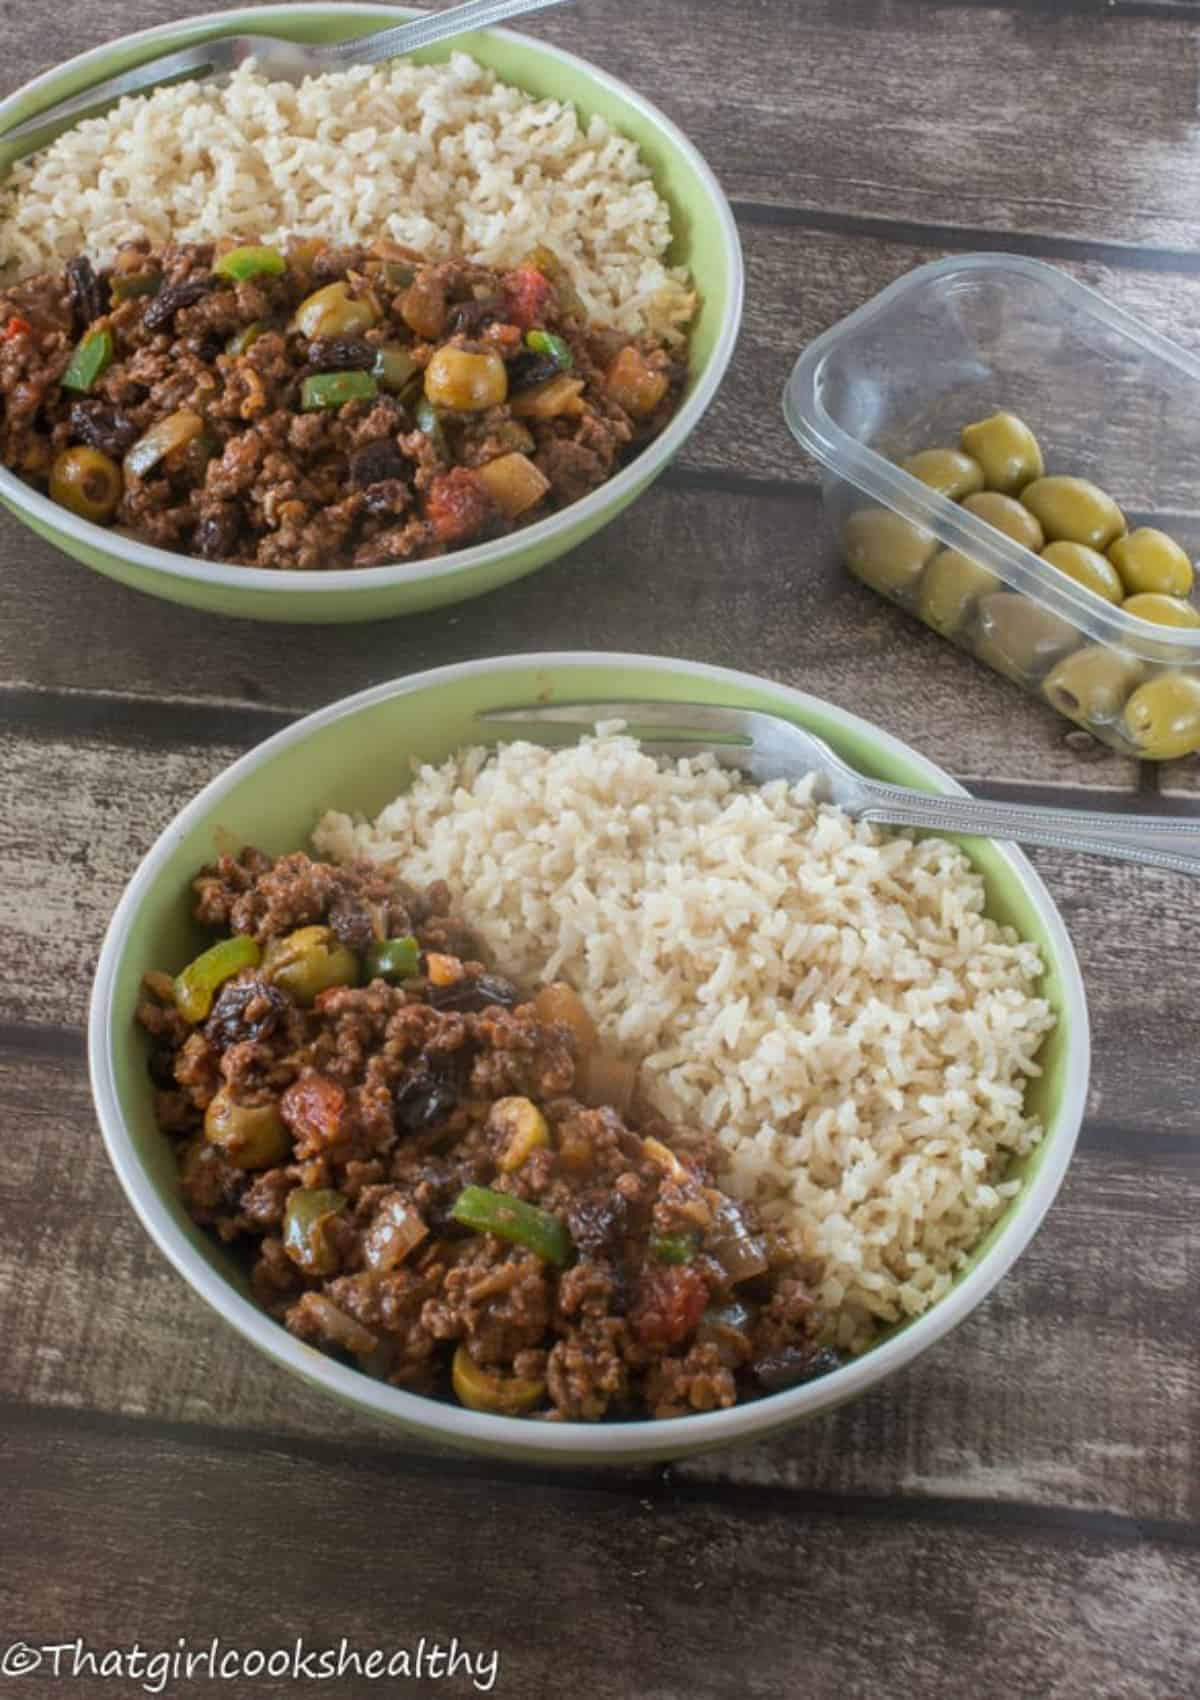 Two bowls of picadillo